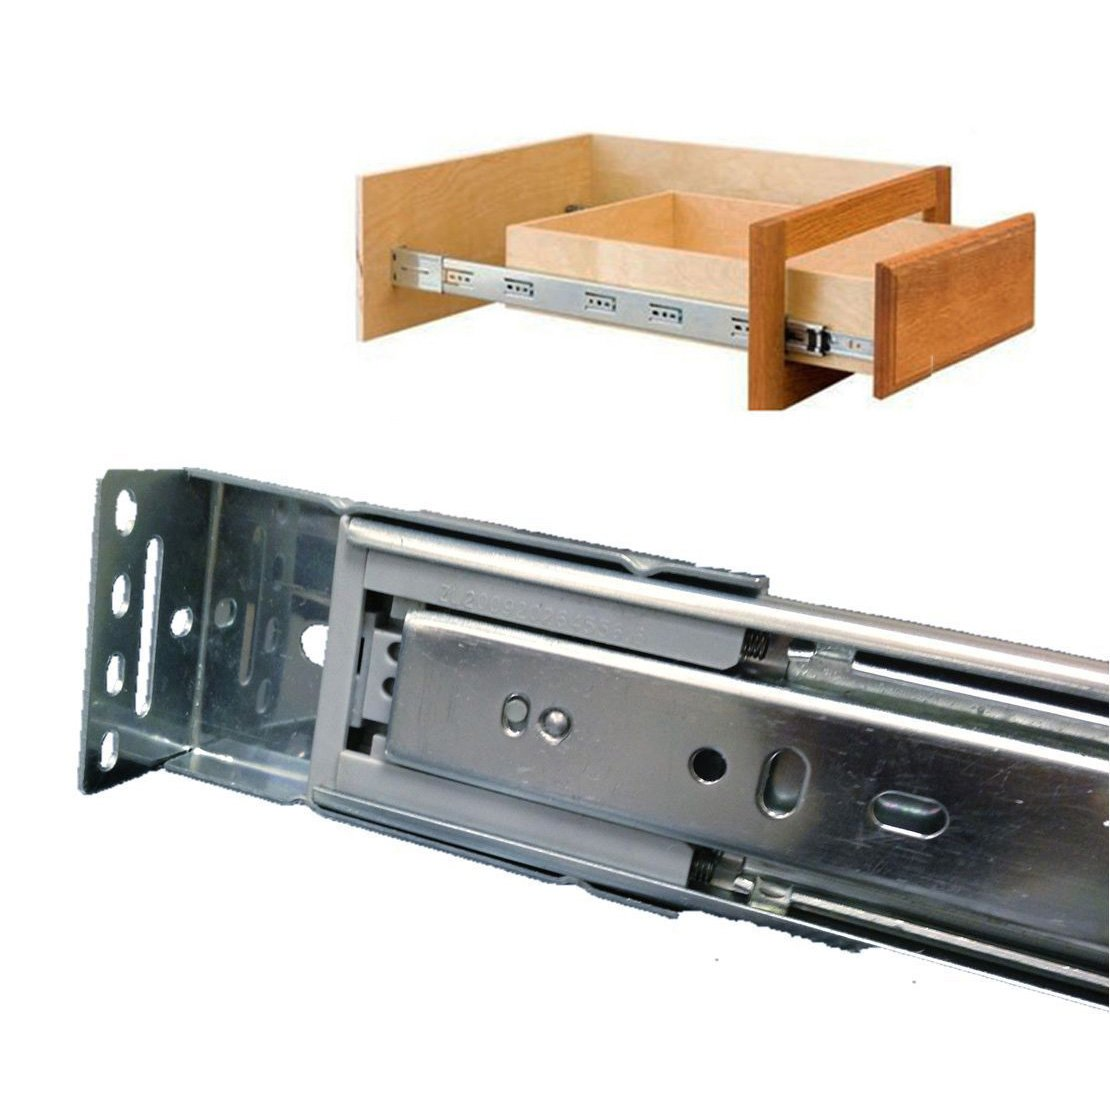 Probrico Brackets Included Soft Close 18-inch Full-Ext Drawer Slide 100-Pound Capacity Rear Mount,10 Pairs Sets by Probrico (Image #6)